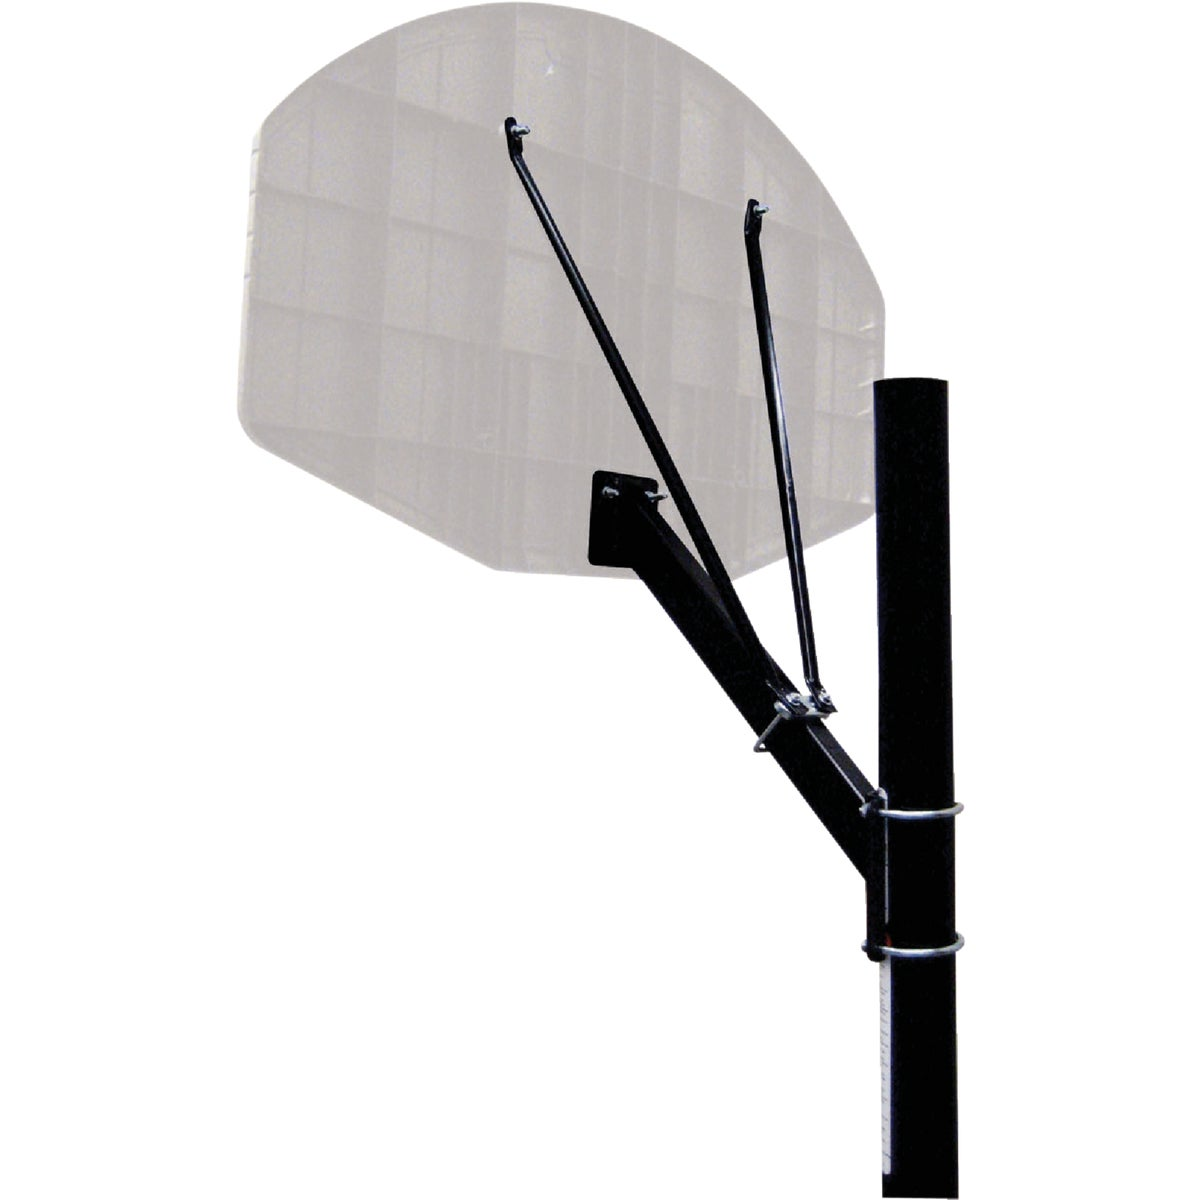 BASKETBALL POLE